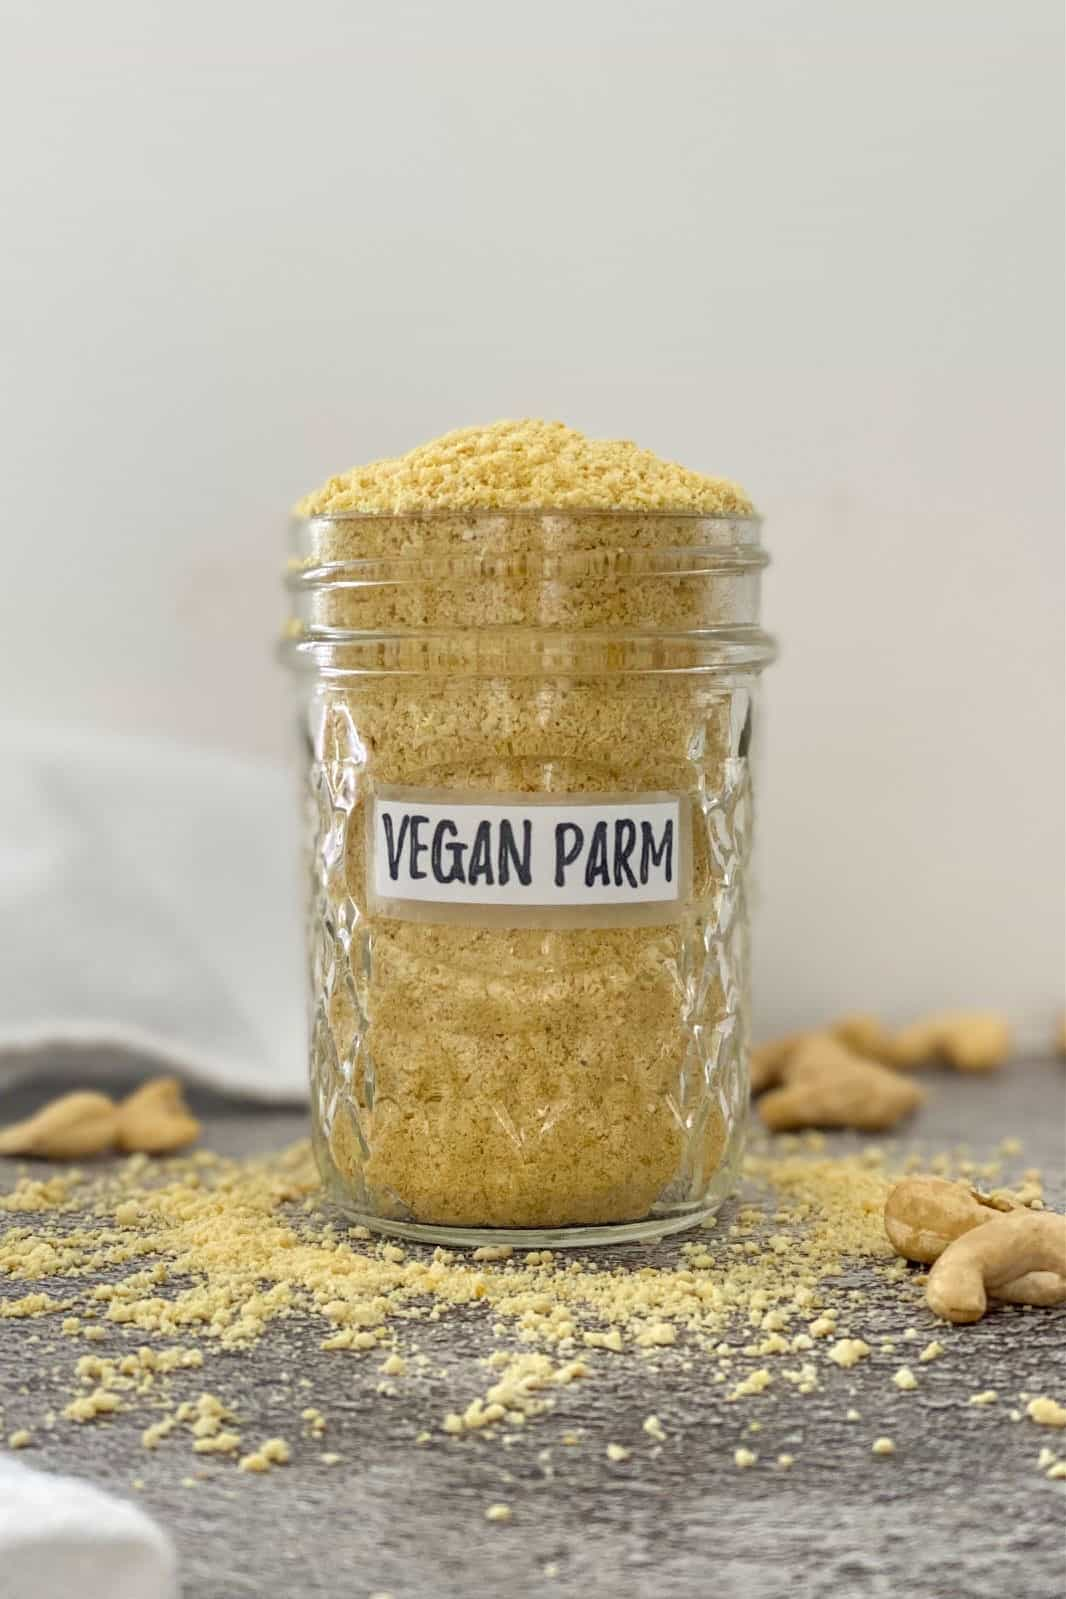 Vegan parmesan cheese overflowing in glass jar with cashews scattered around it.